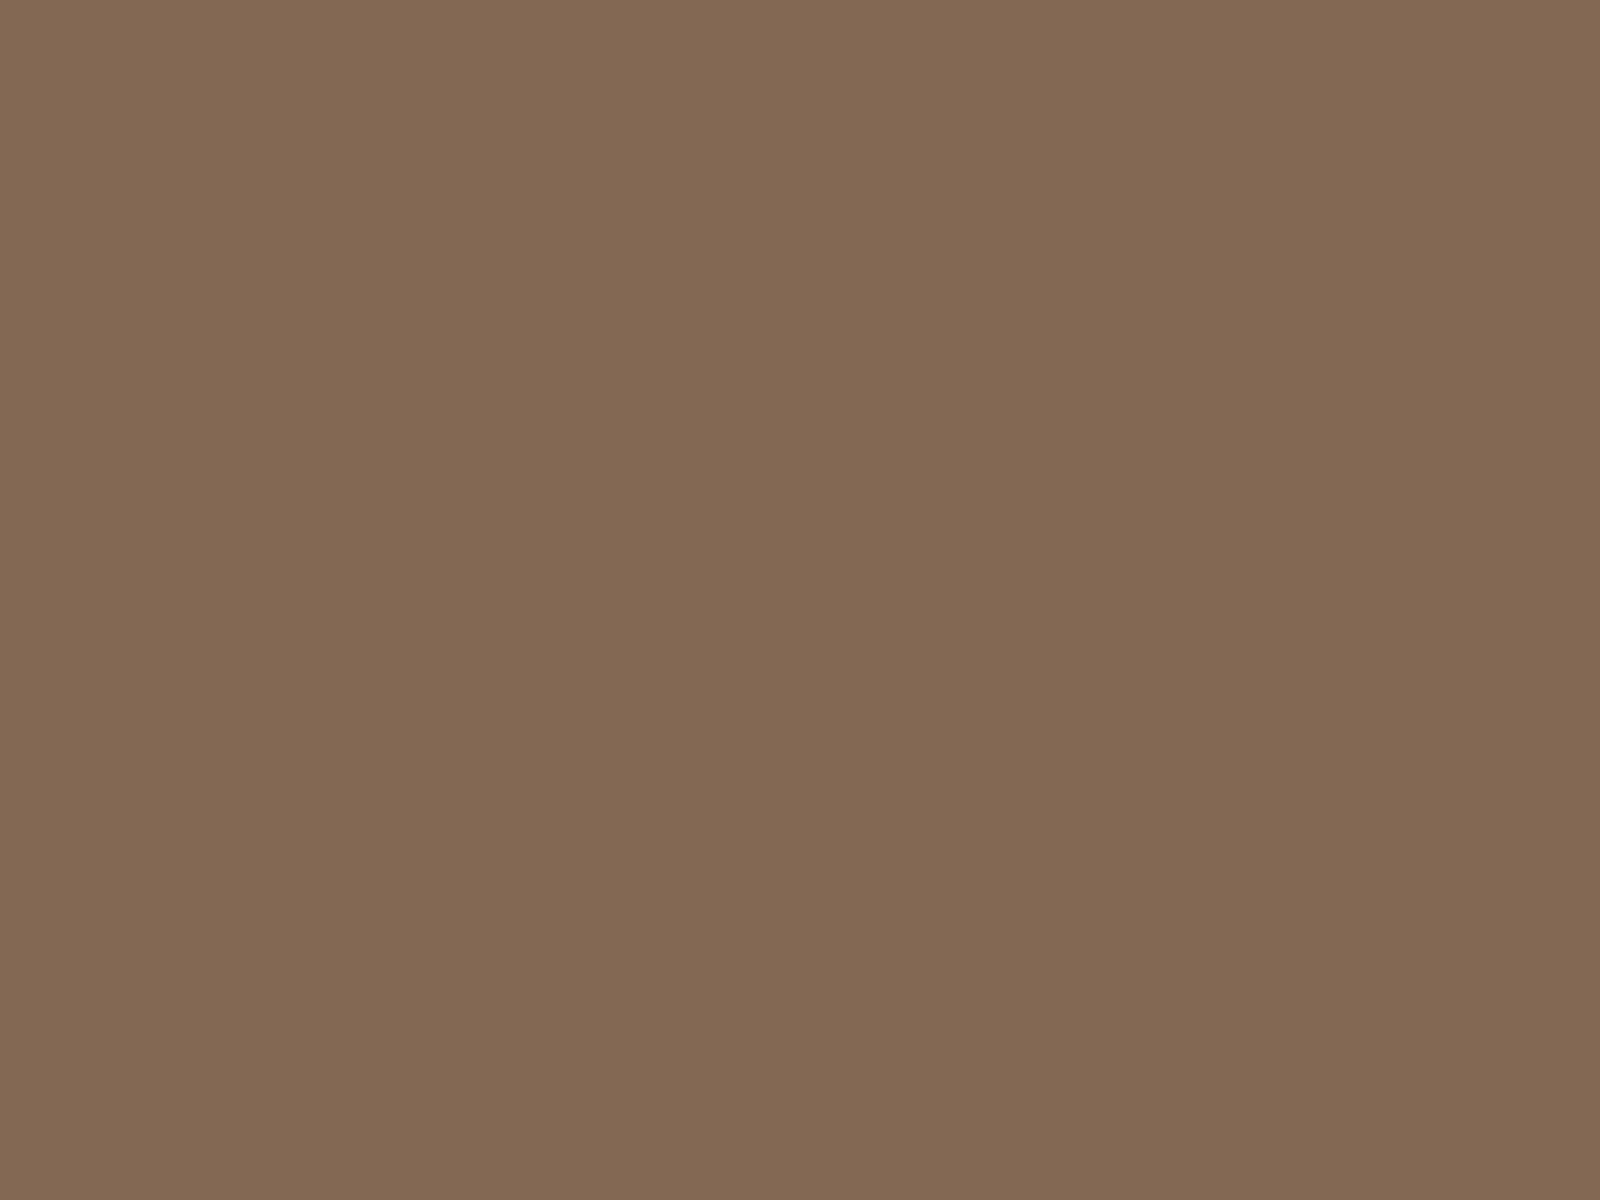 1600x1200 Pastel Brown Solid Color Background